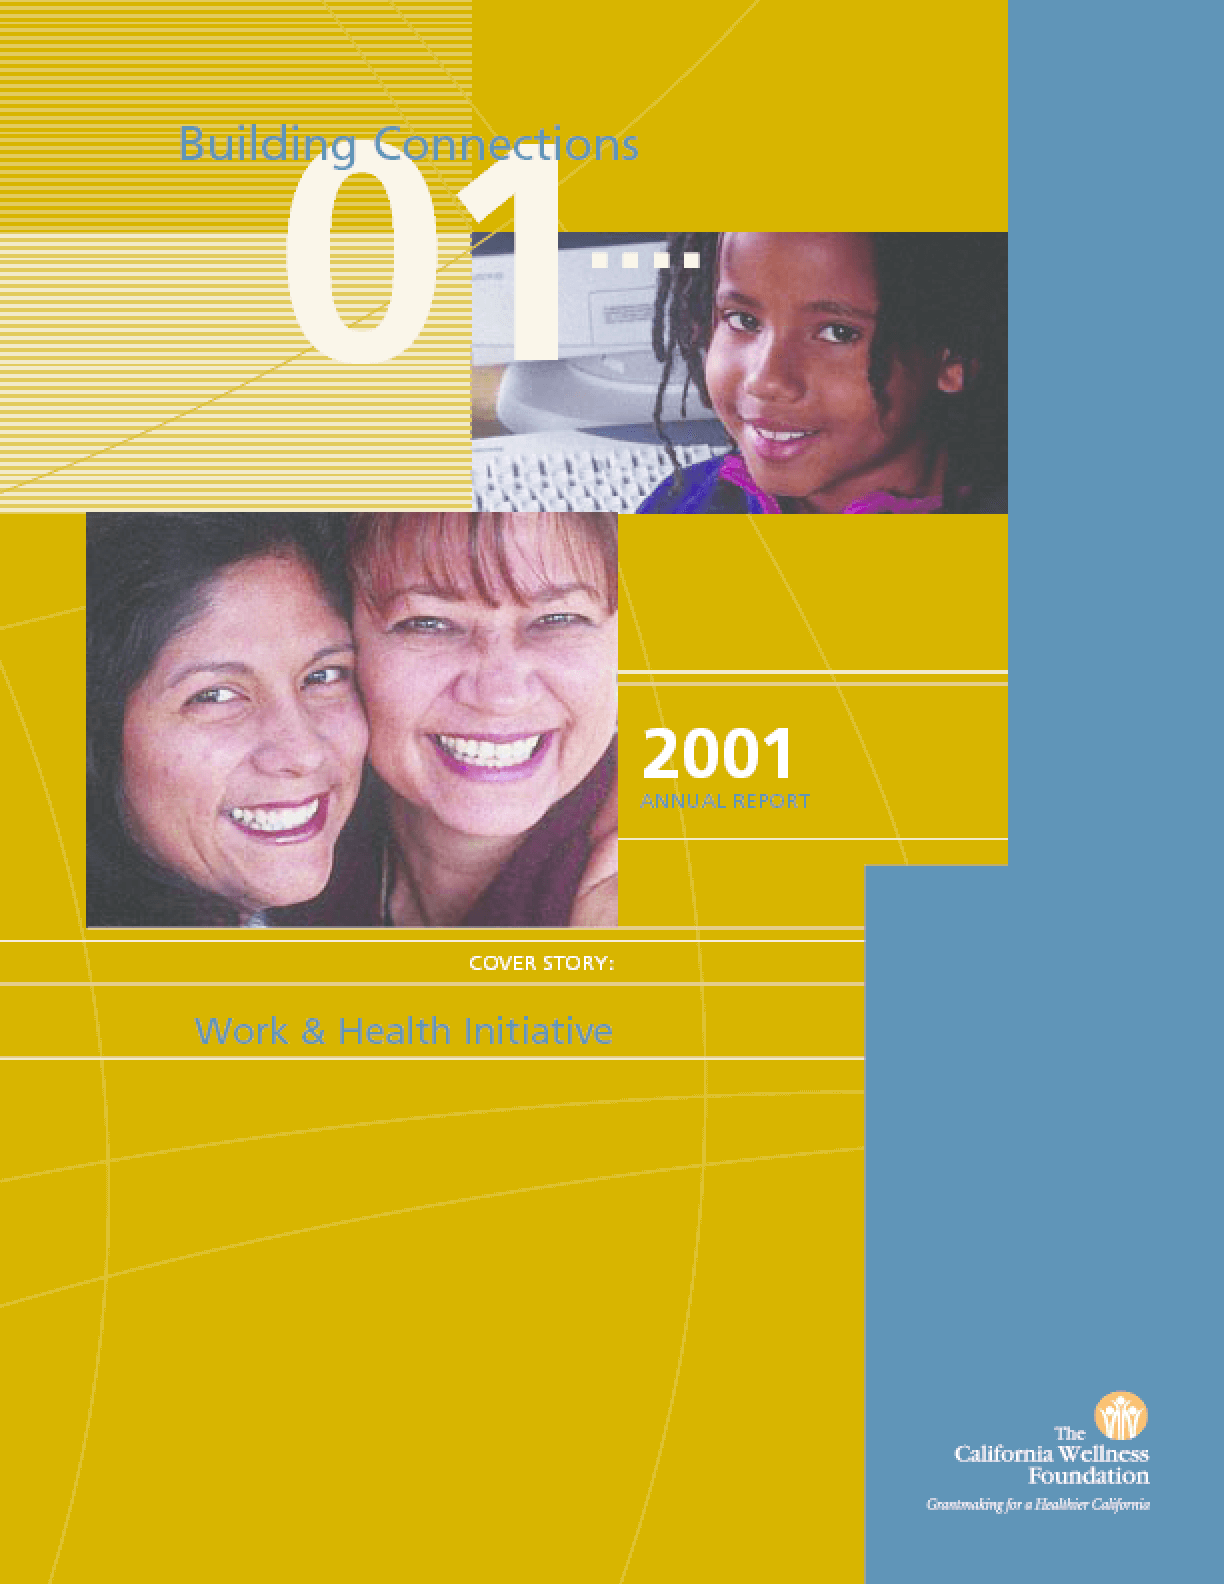 California Wellness Foundation - 2001 Annual Report